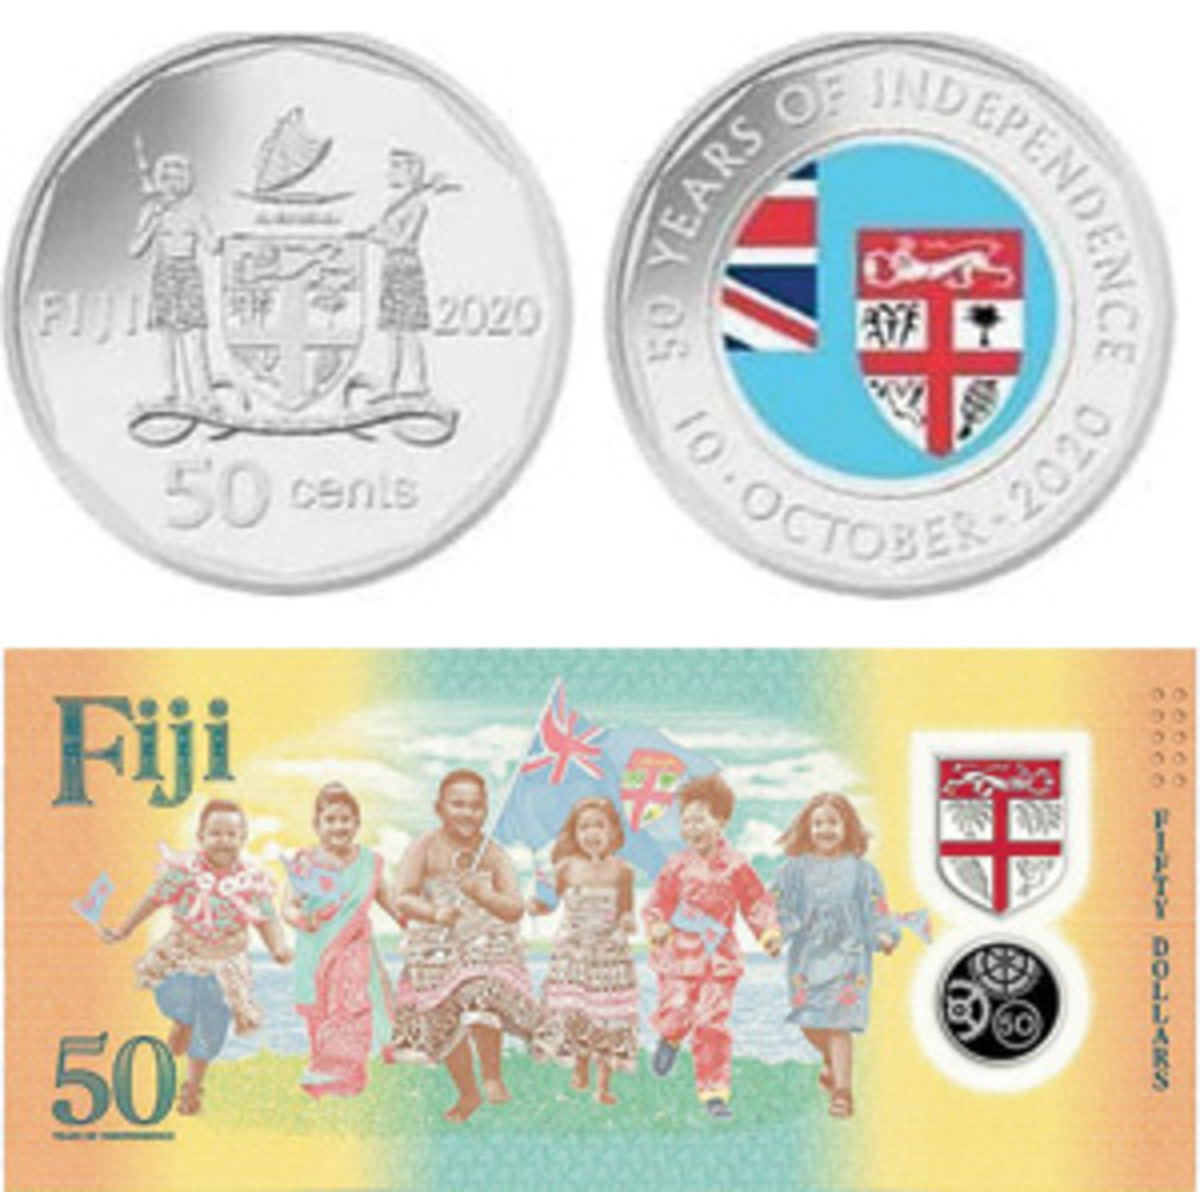 Fiji is one of a growing number of countries that are simultaneously issuing commemorative coins and bank notes to mark the same event.